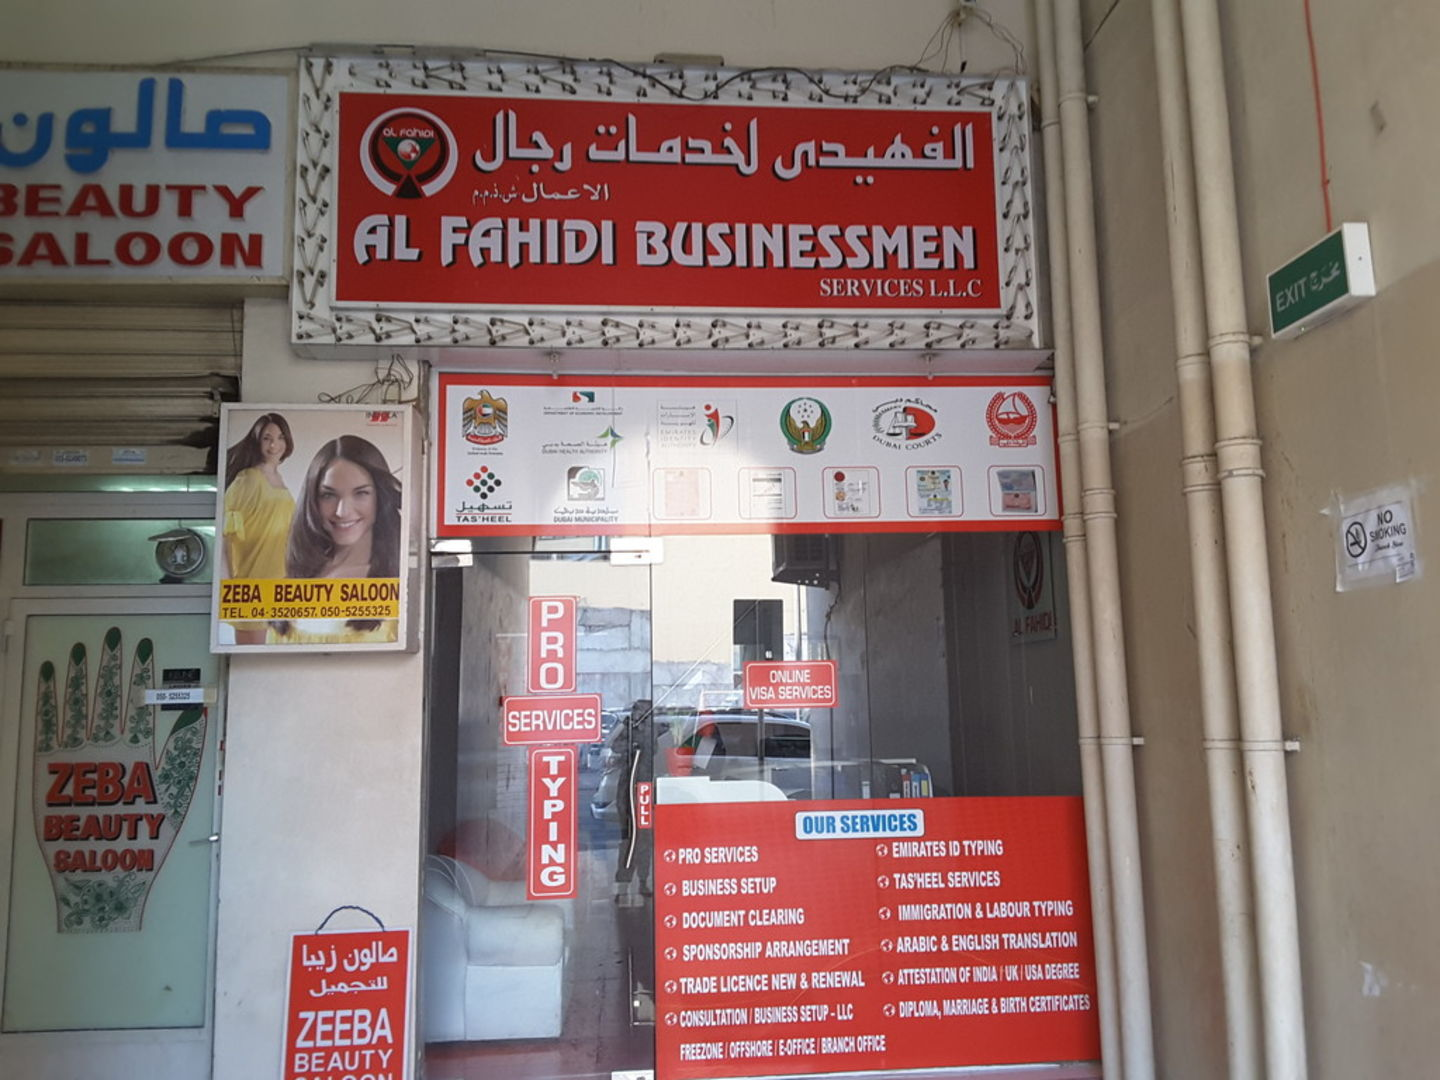 HiDubai-business-al-fahidi-businessmen-services-b2b-services-business-consultation-services-al-fahidi-al-souq-al-kabeer-dubai-2